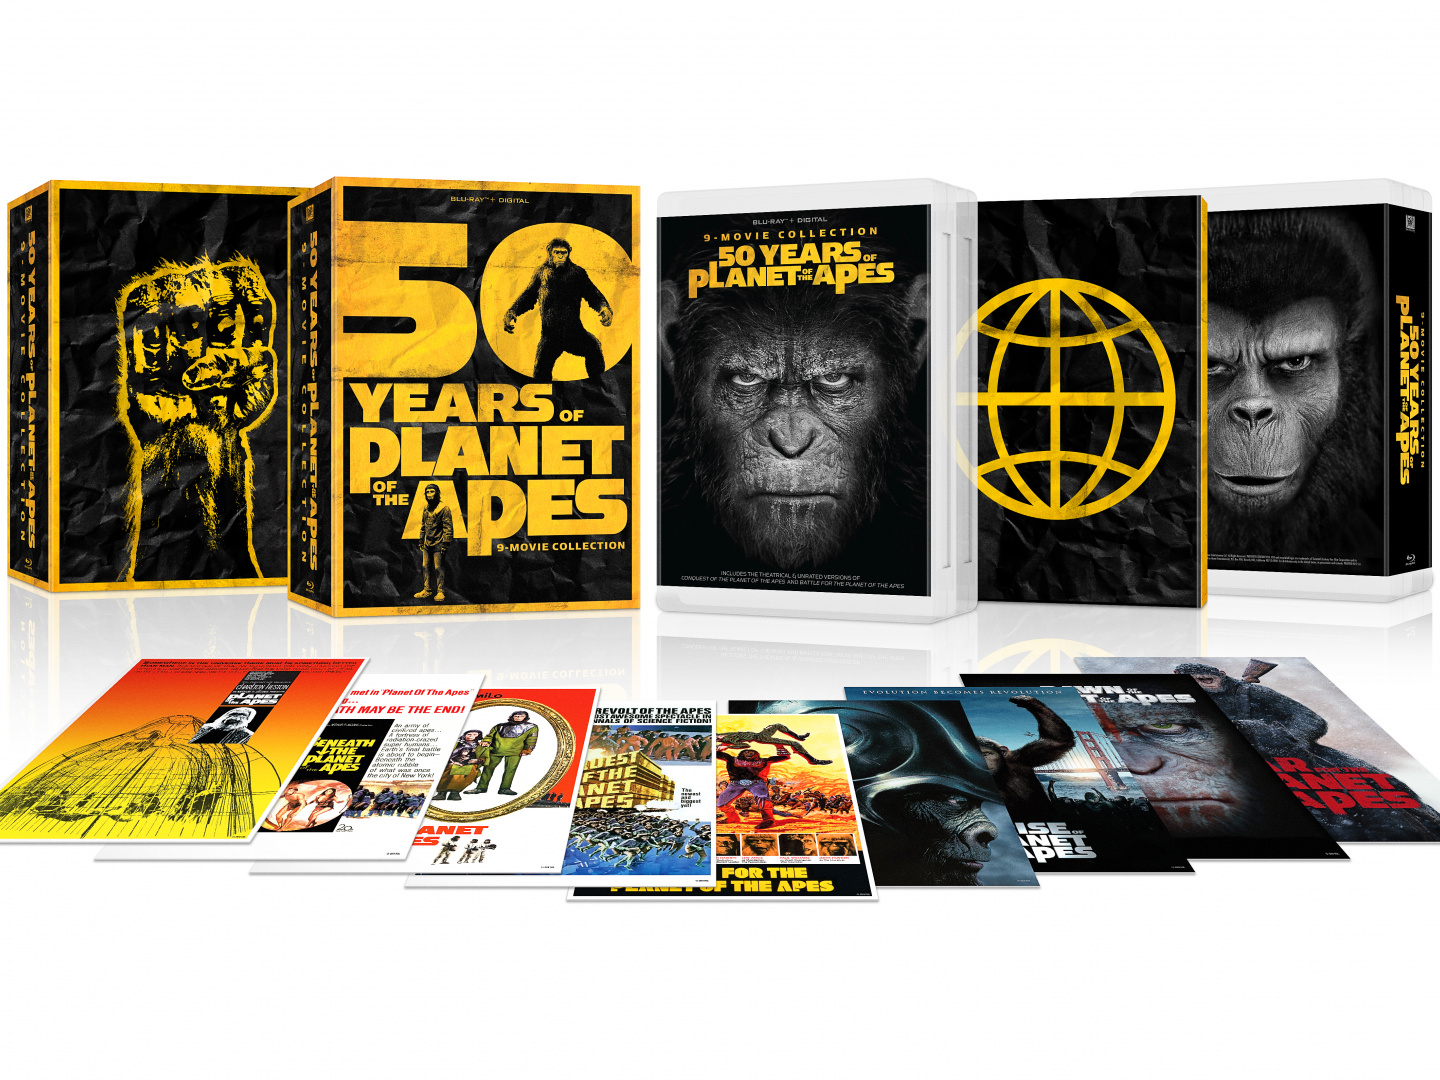 Planet of the Apes 50th Anniversary Collection Thumbnail